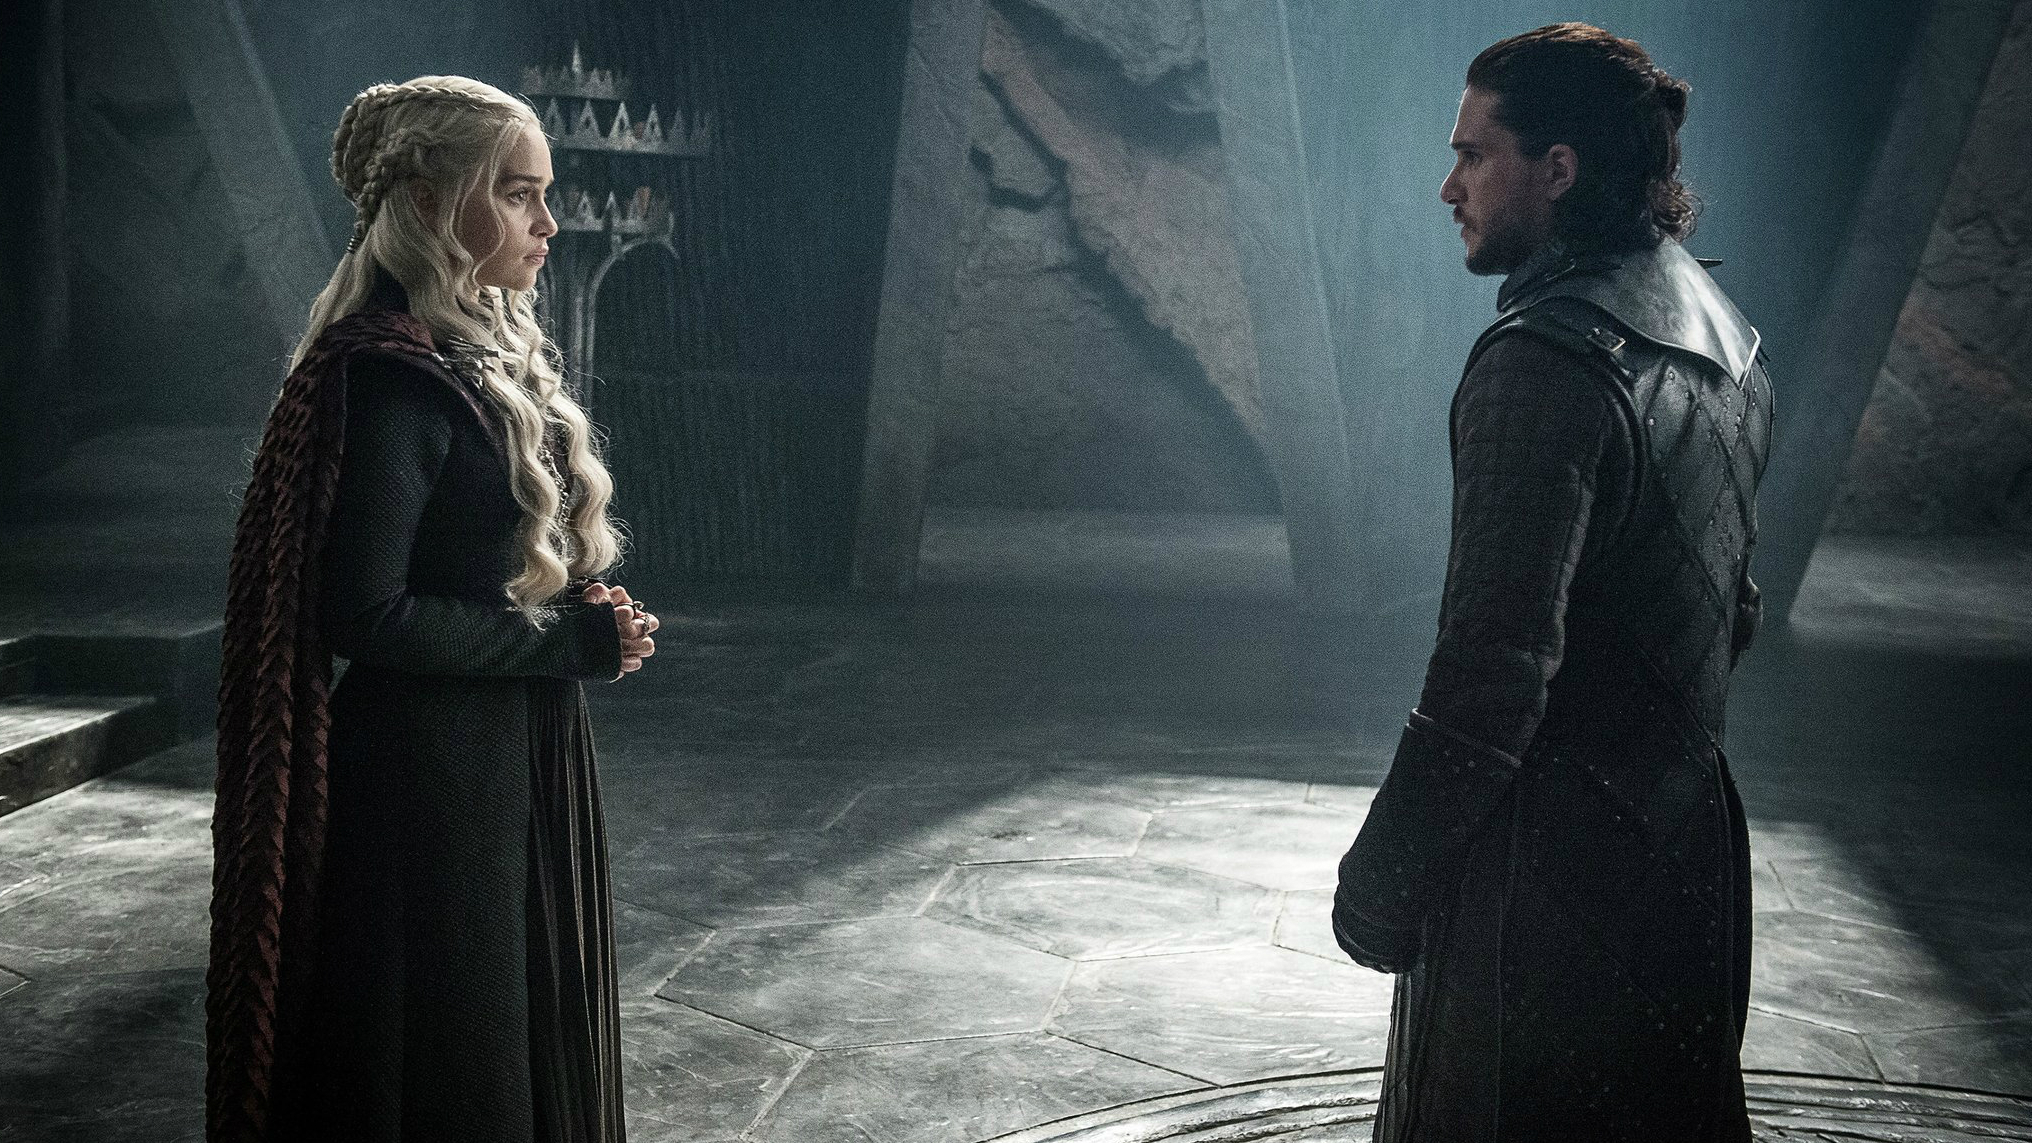 'Game of Thrones' EP confirms incestuous bond between Daenerys and Jon Snow